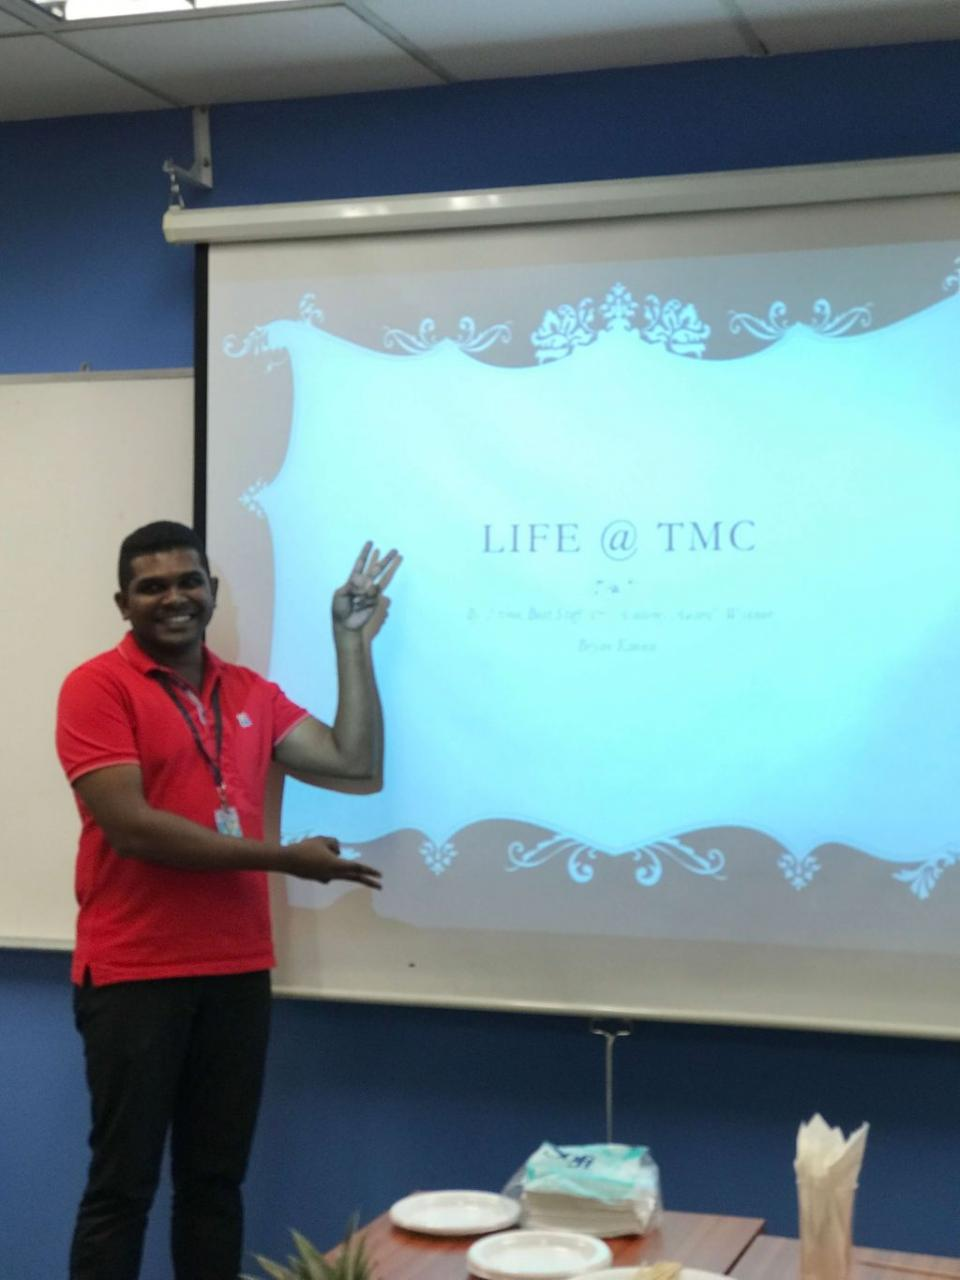 Mr Bryan, TMC's Facilities Manager, sharing thoughts on life in TMC